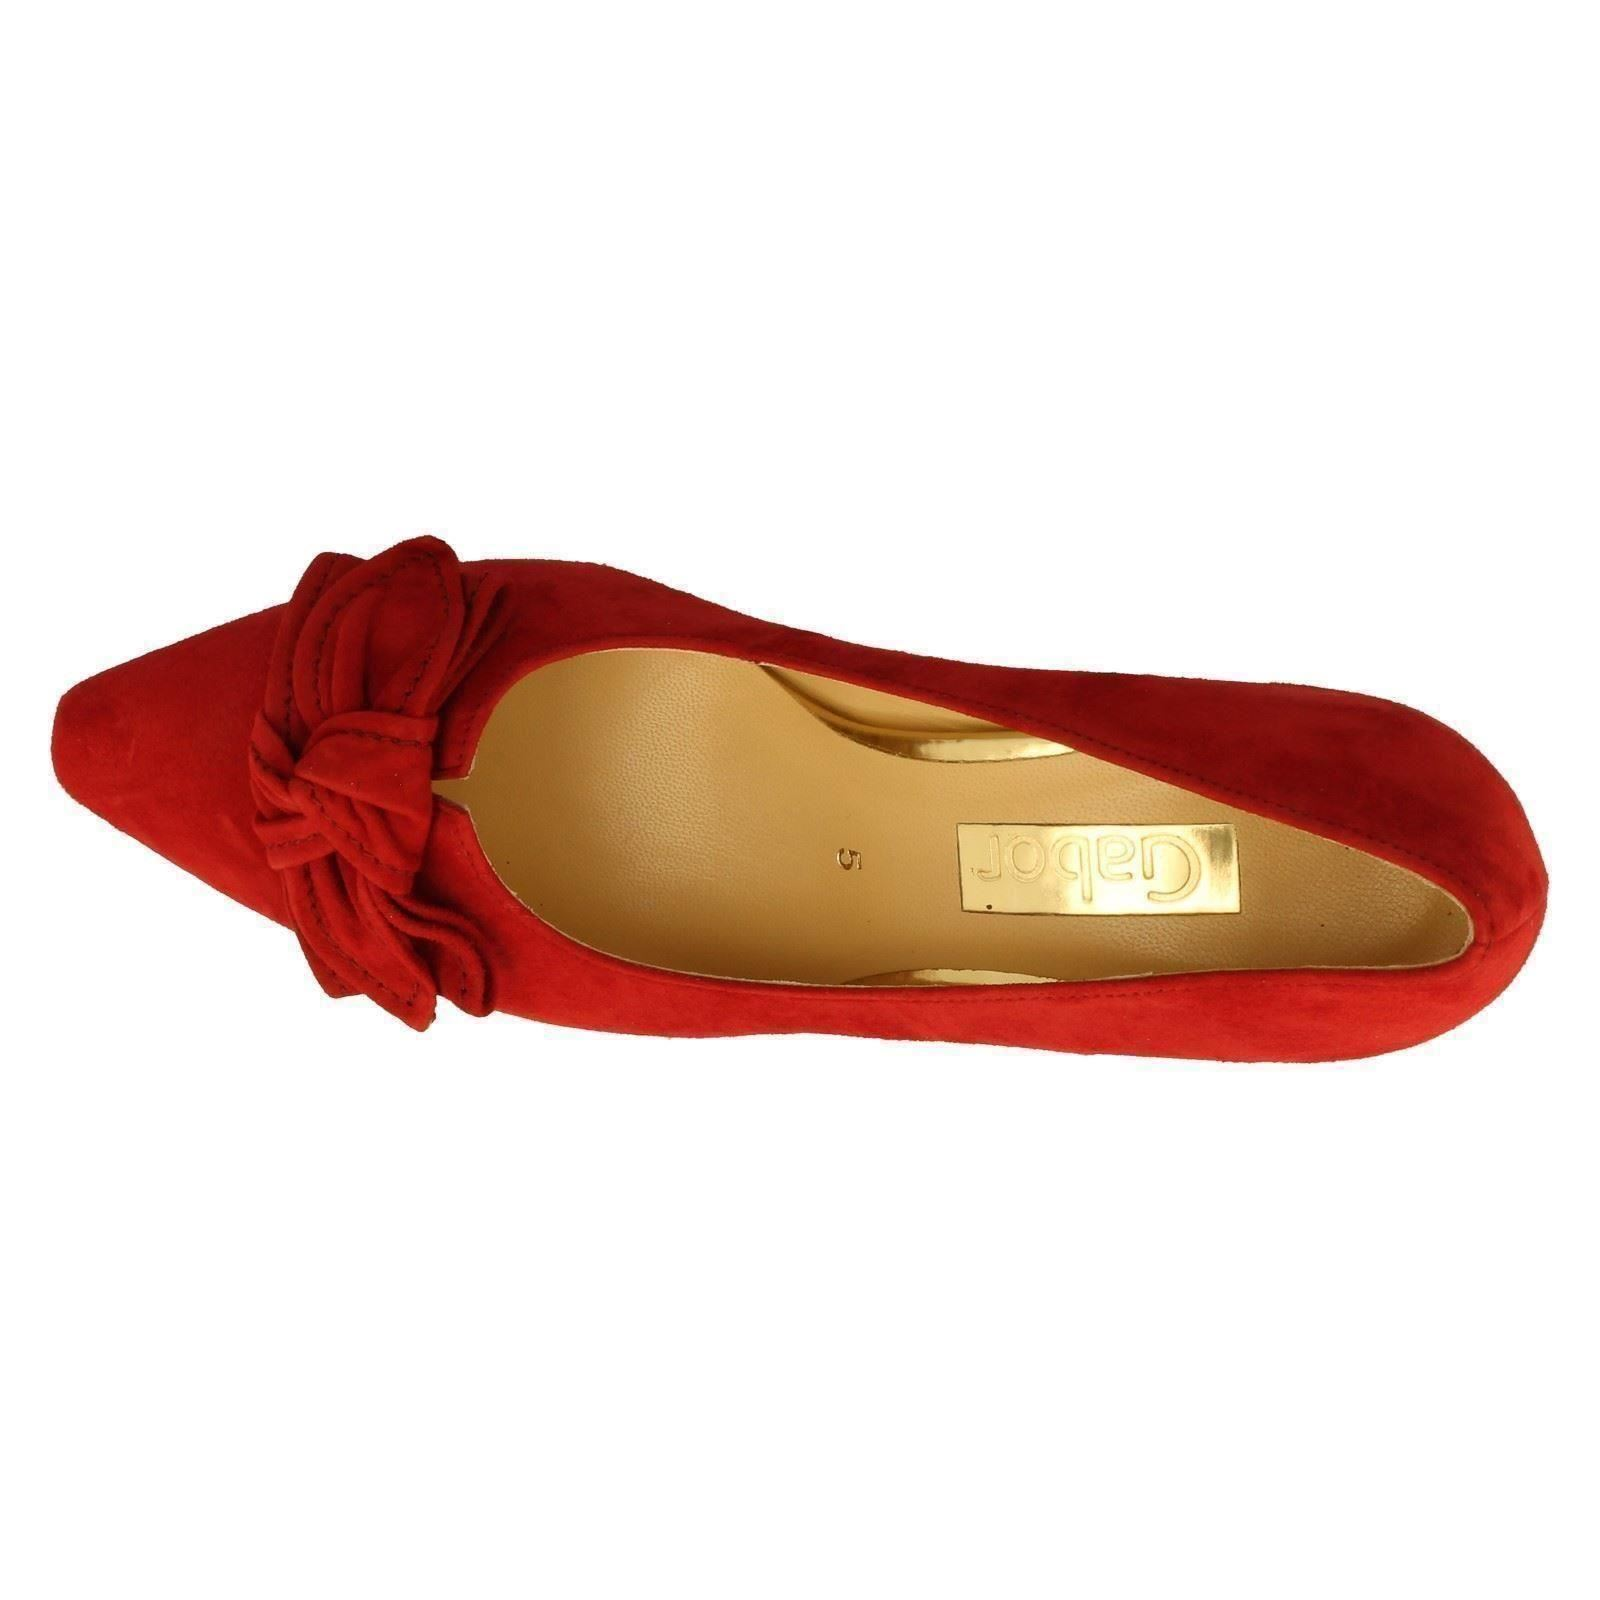 Gentleman/Lady Ladies Gabor Court Shoes Shoes Court 65.154 -W Durable service Sufficient supply renewed on time cc5198